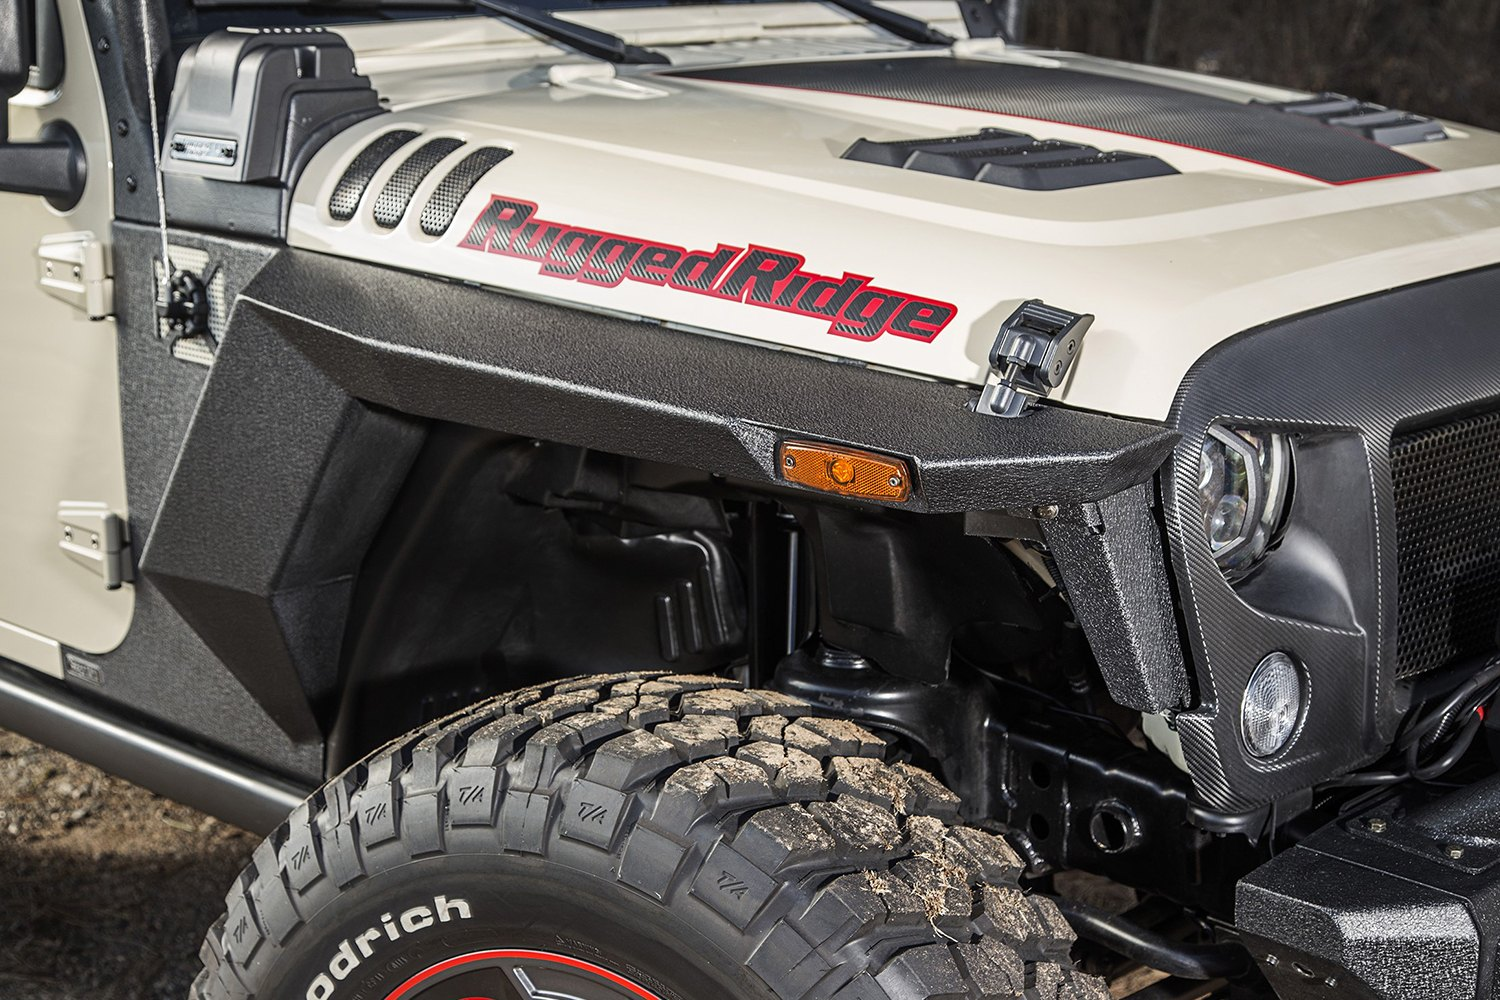 Rugged Ridge 174 11615 05 Xhd Armor Fenders And Liner Kit